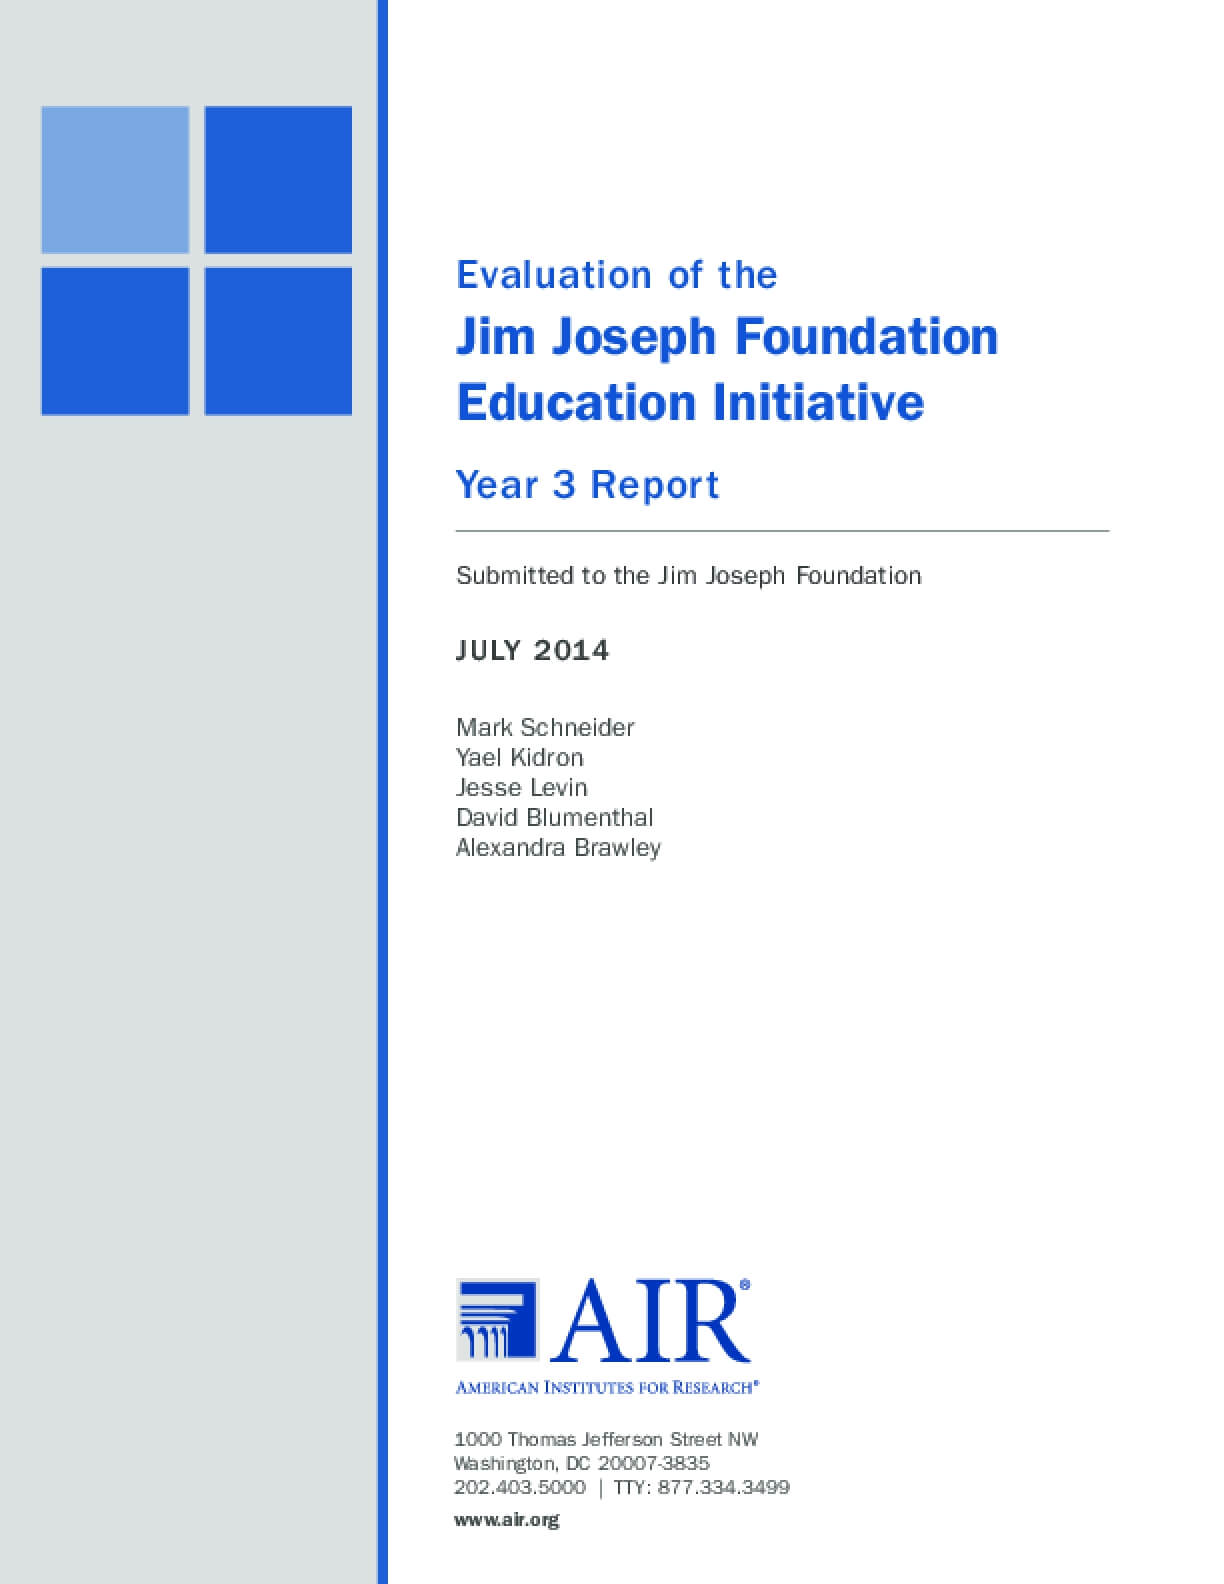 Evaluation of the Jim Joseph Foundation Education Initiative Year 3 Report